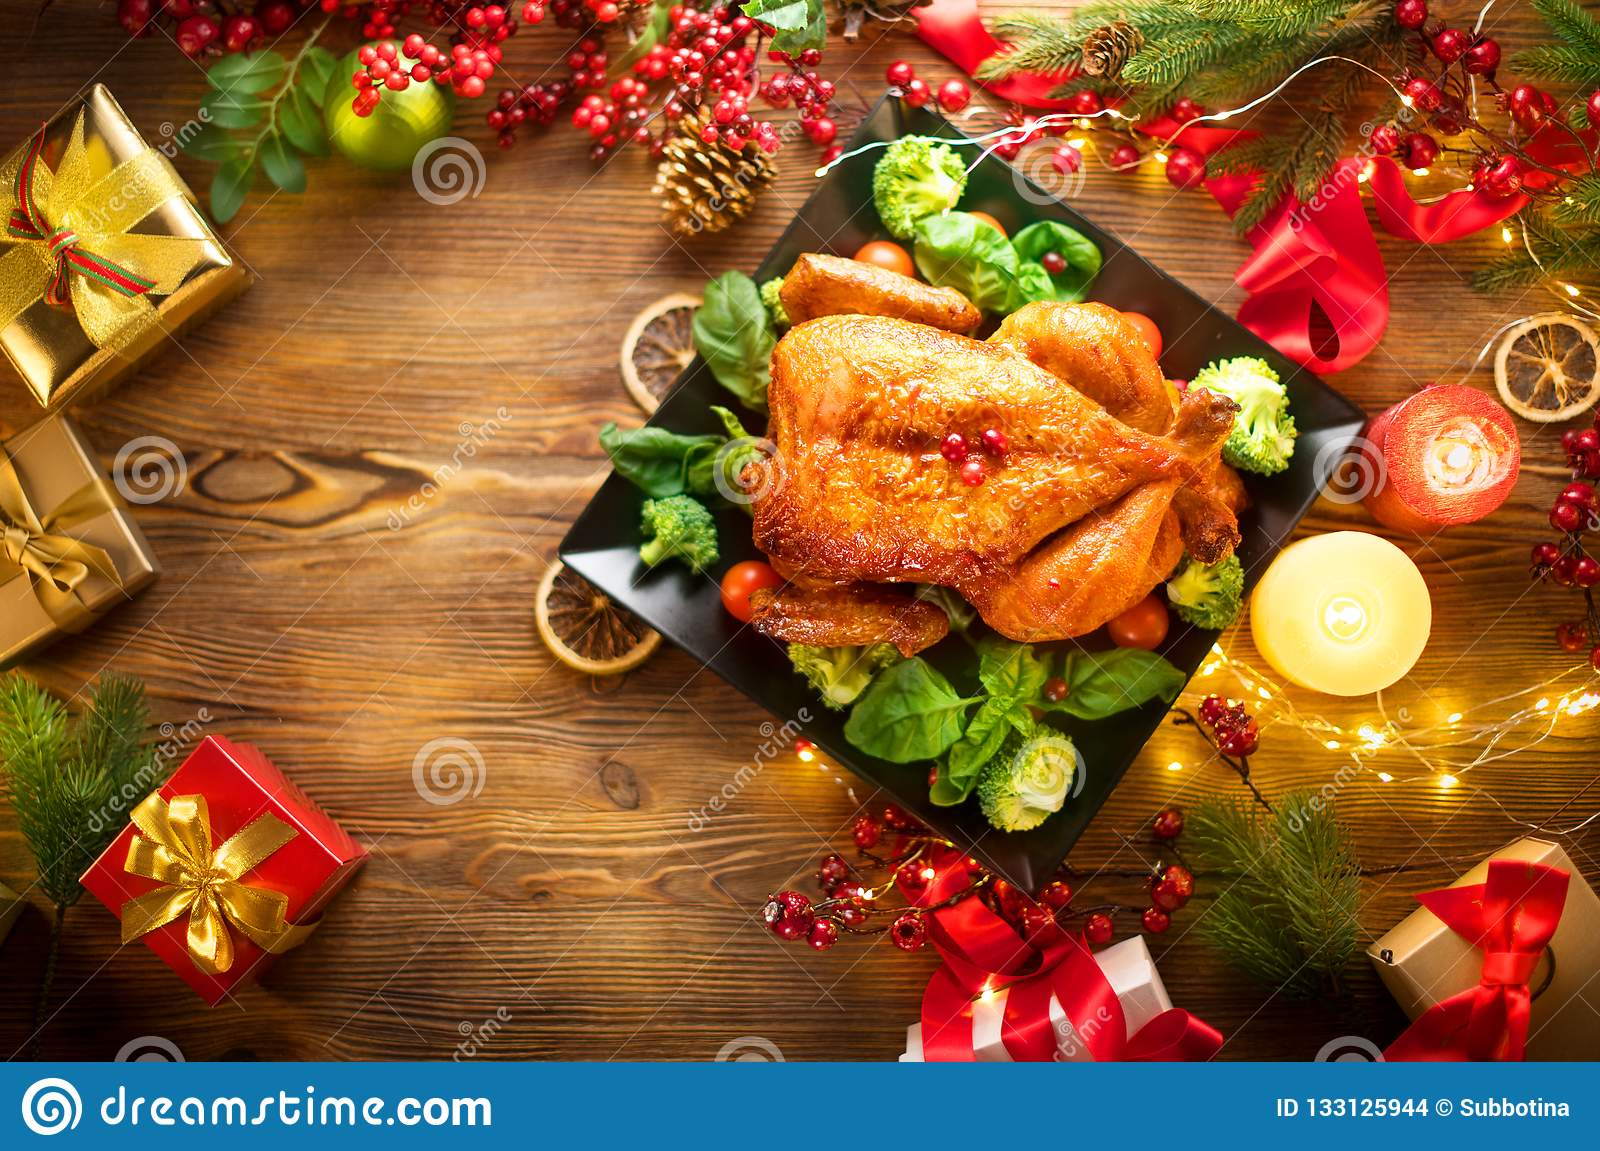 Christmas family dinner. Roasted chicken on holiday table, decorated with gift boxes, burning candles and garlands